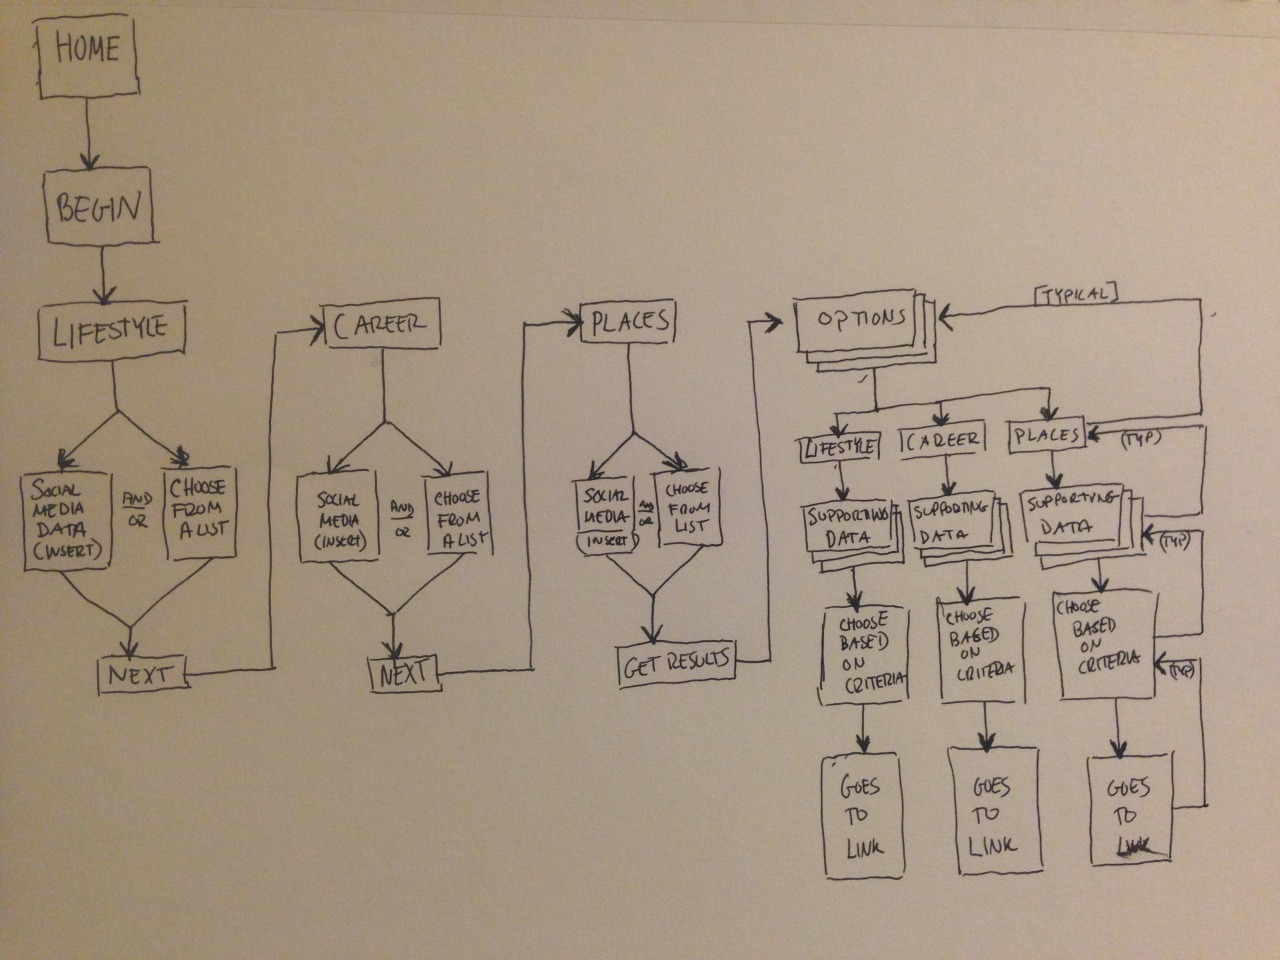 User Flow for Project 1